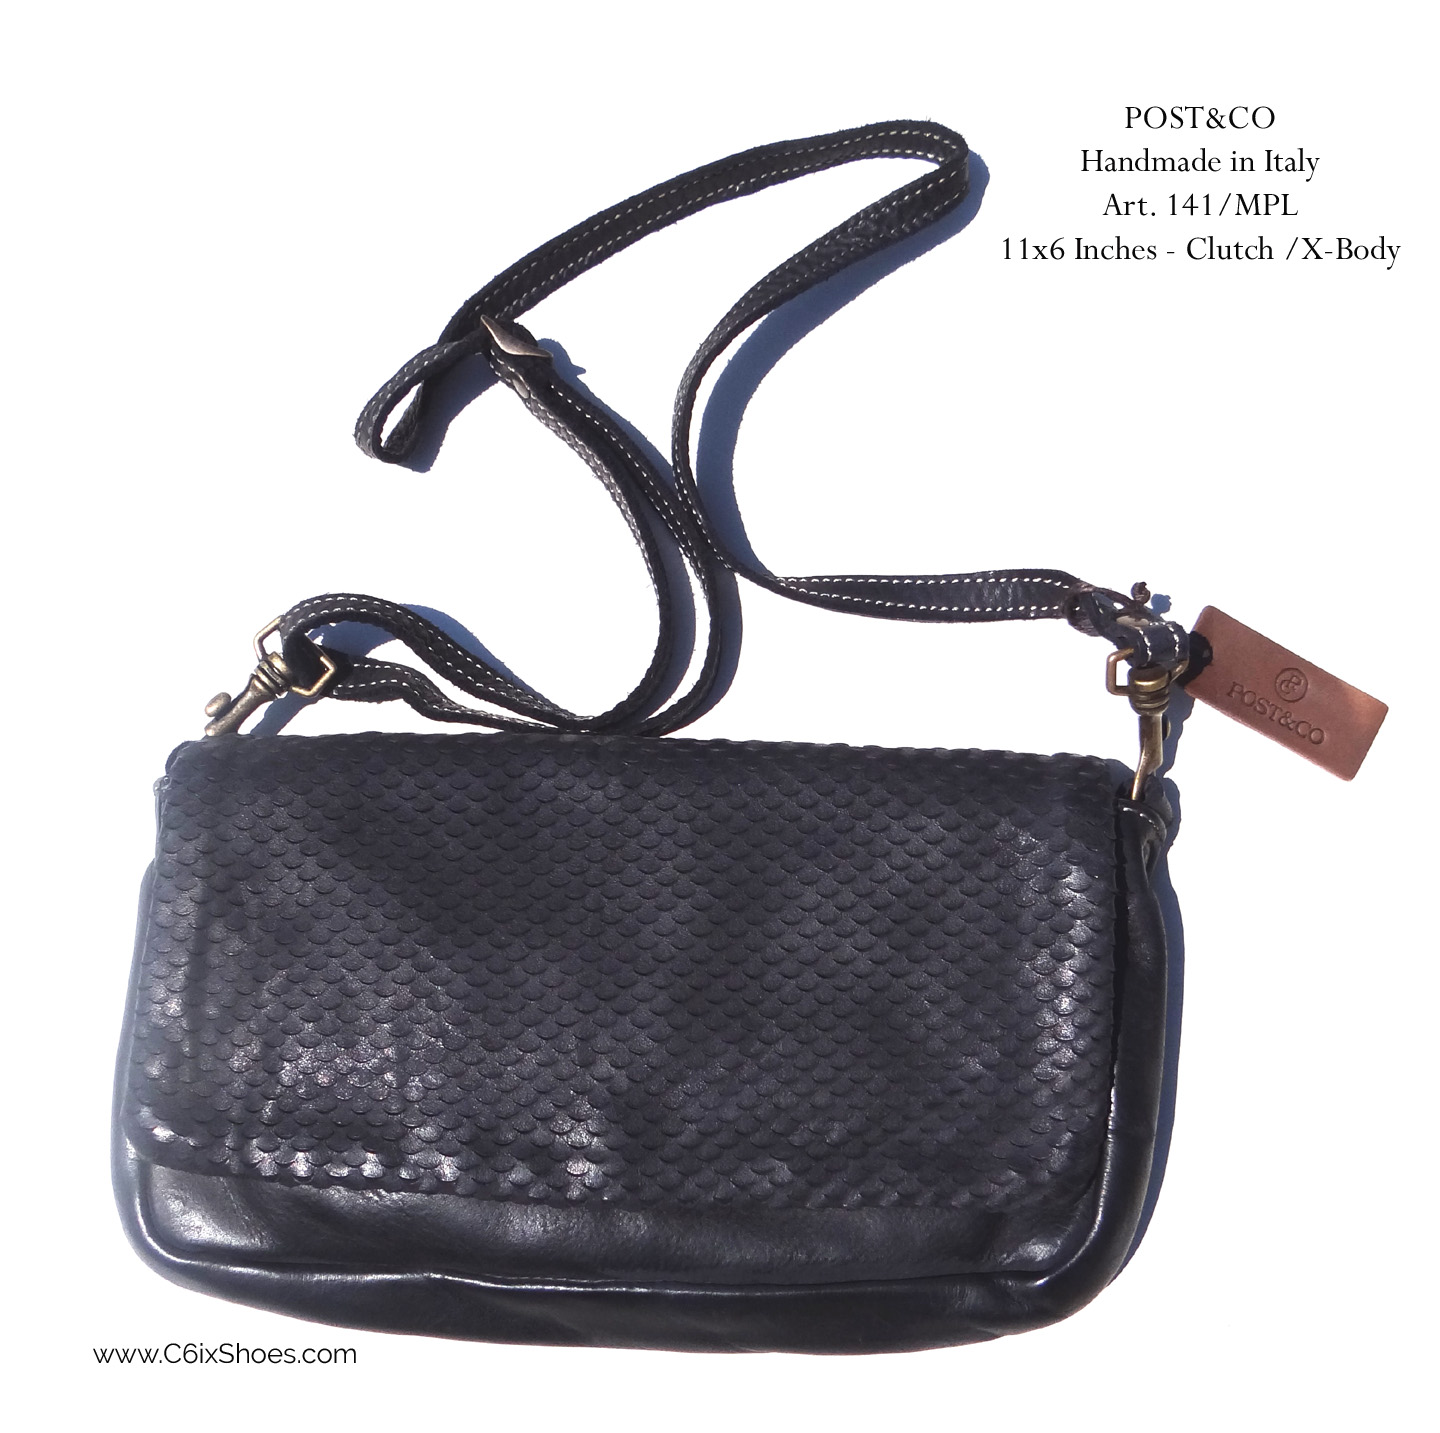 141 MPL BLK Clutch copy.jpg